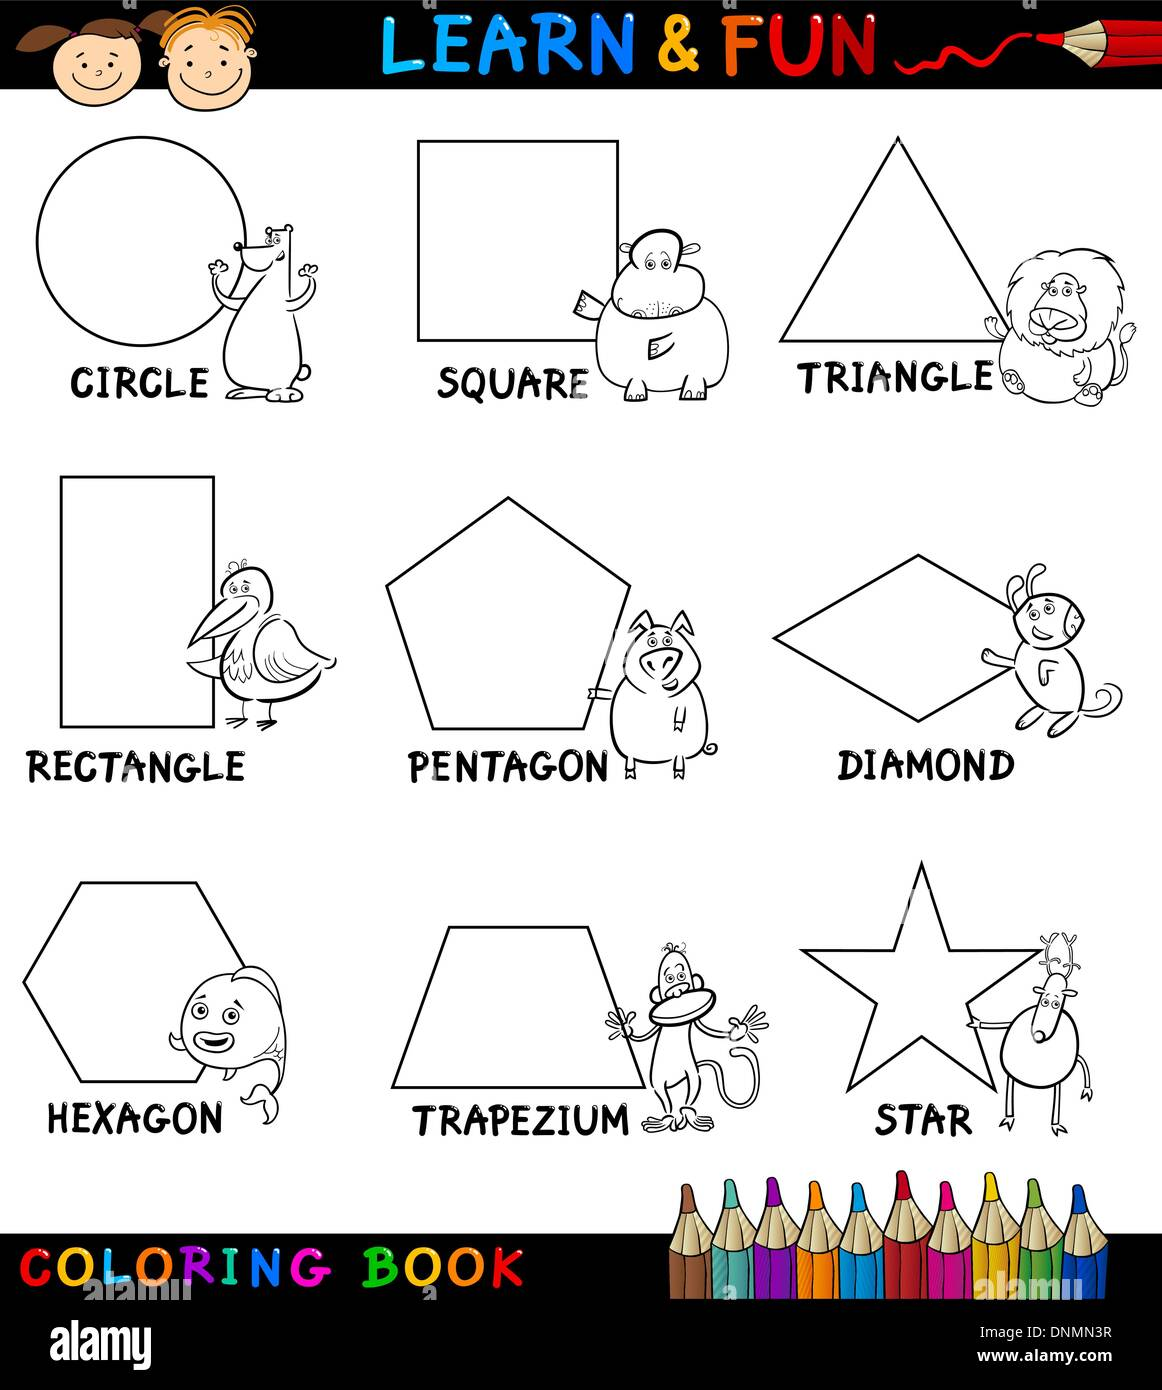 cartoon coloring book or page illustration of basic geometric